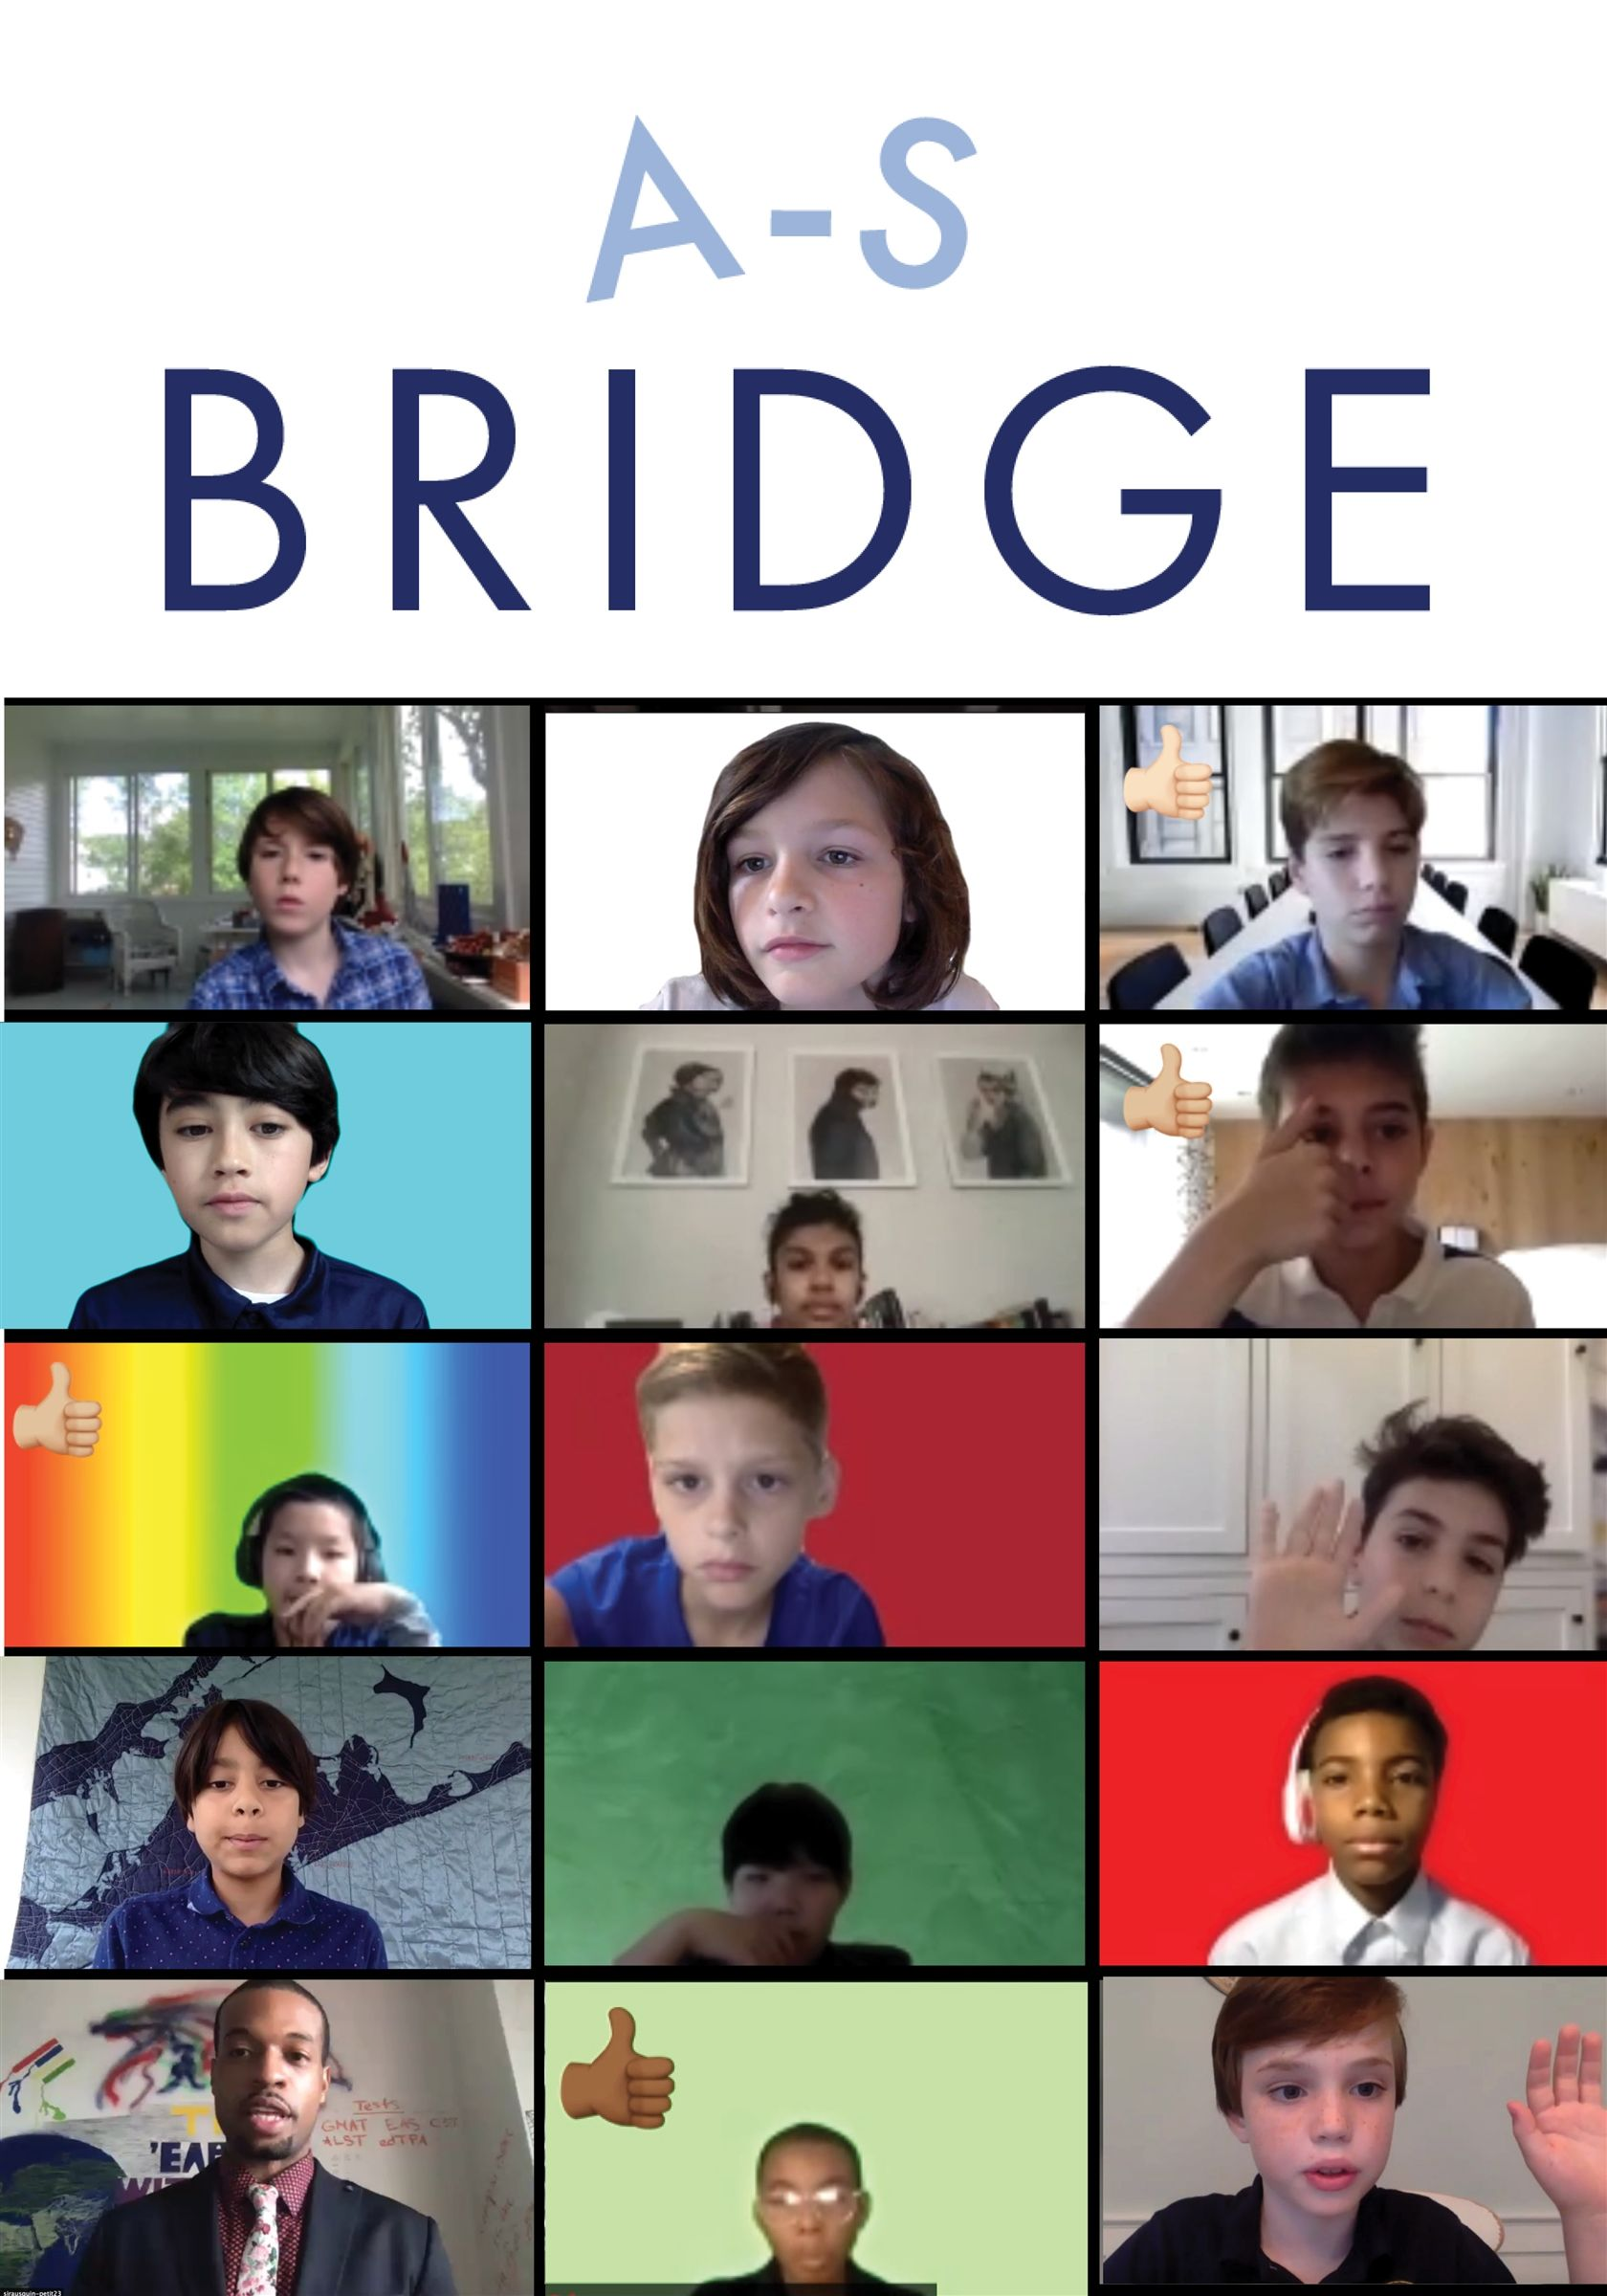 The COVID-19 global pandemic hits and Allen-Stevenson devises its A-S Bridge remote learning plan to bridge learning between school and home.